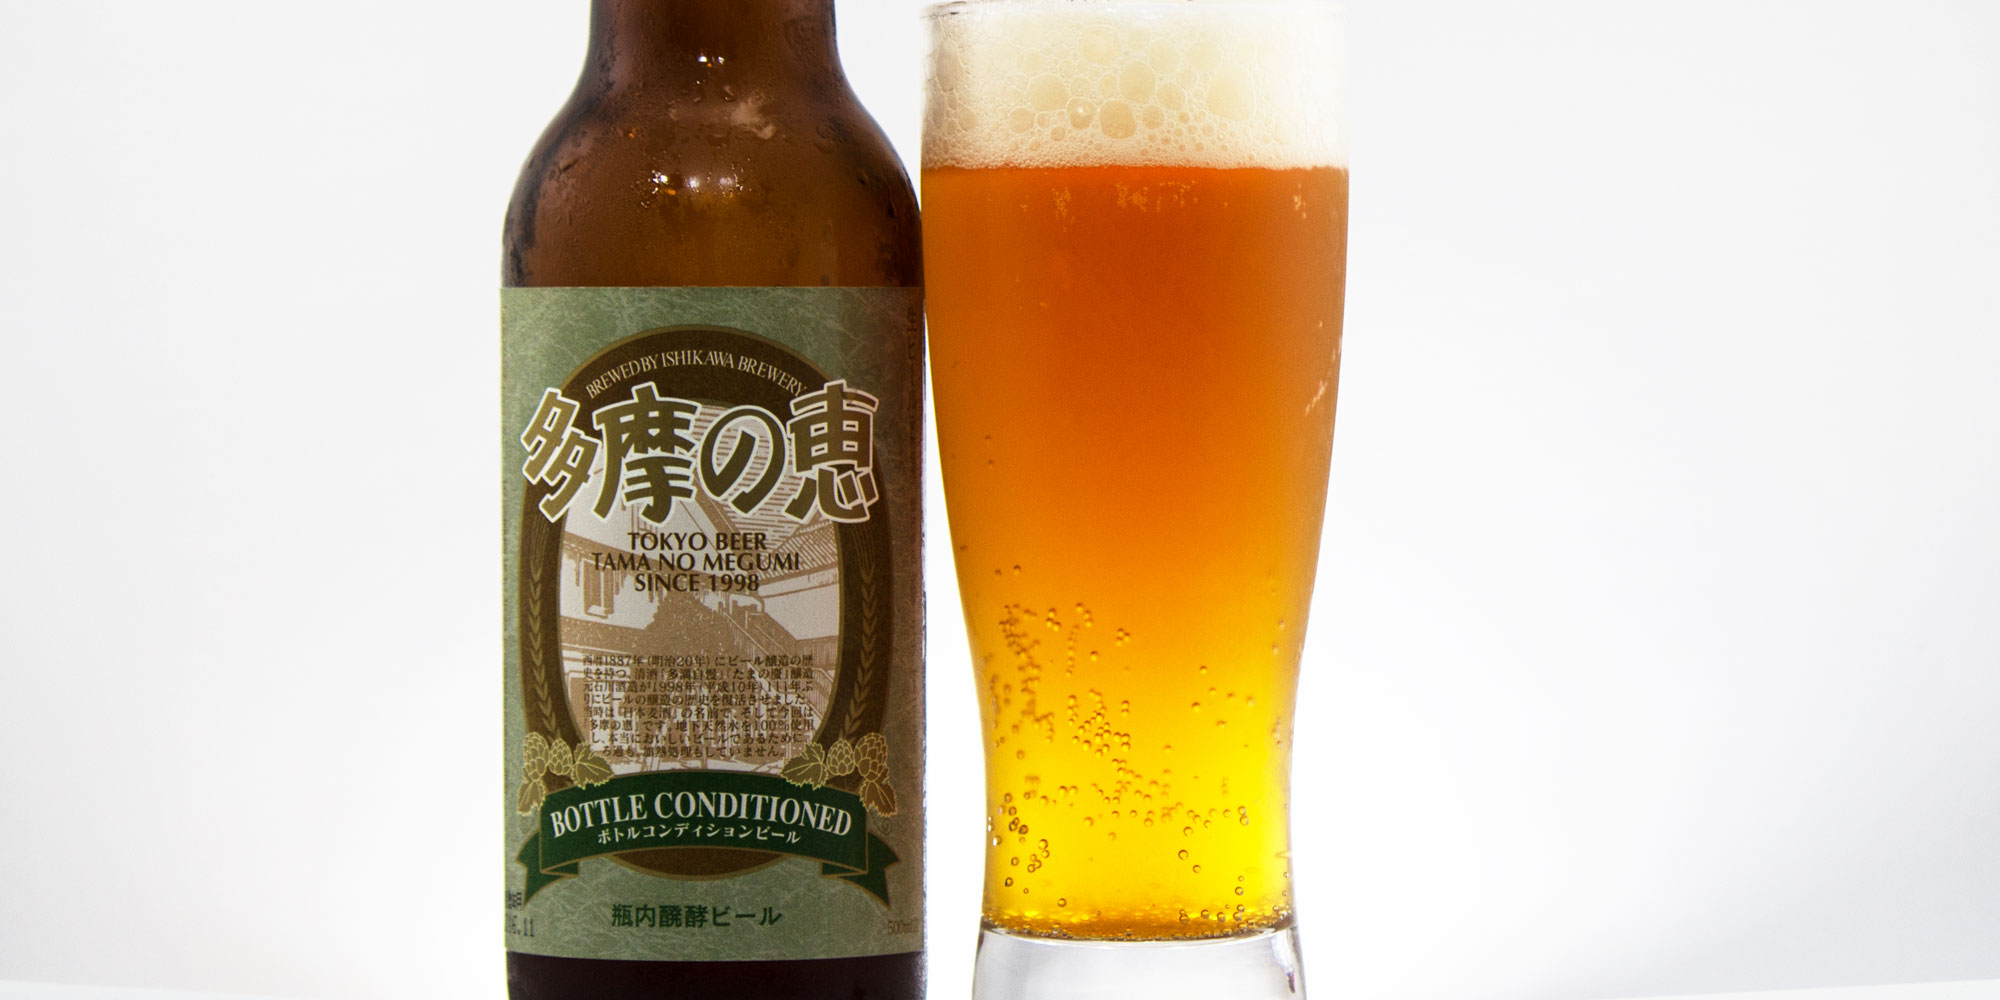 Bottled-Conditioned-Ale---Tama-No-Mgumi04.jpg